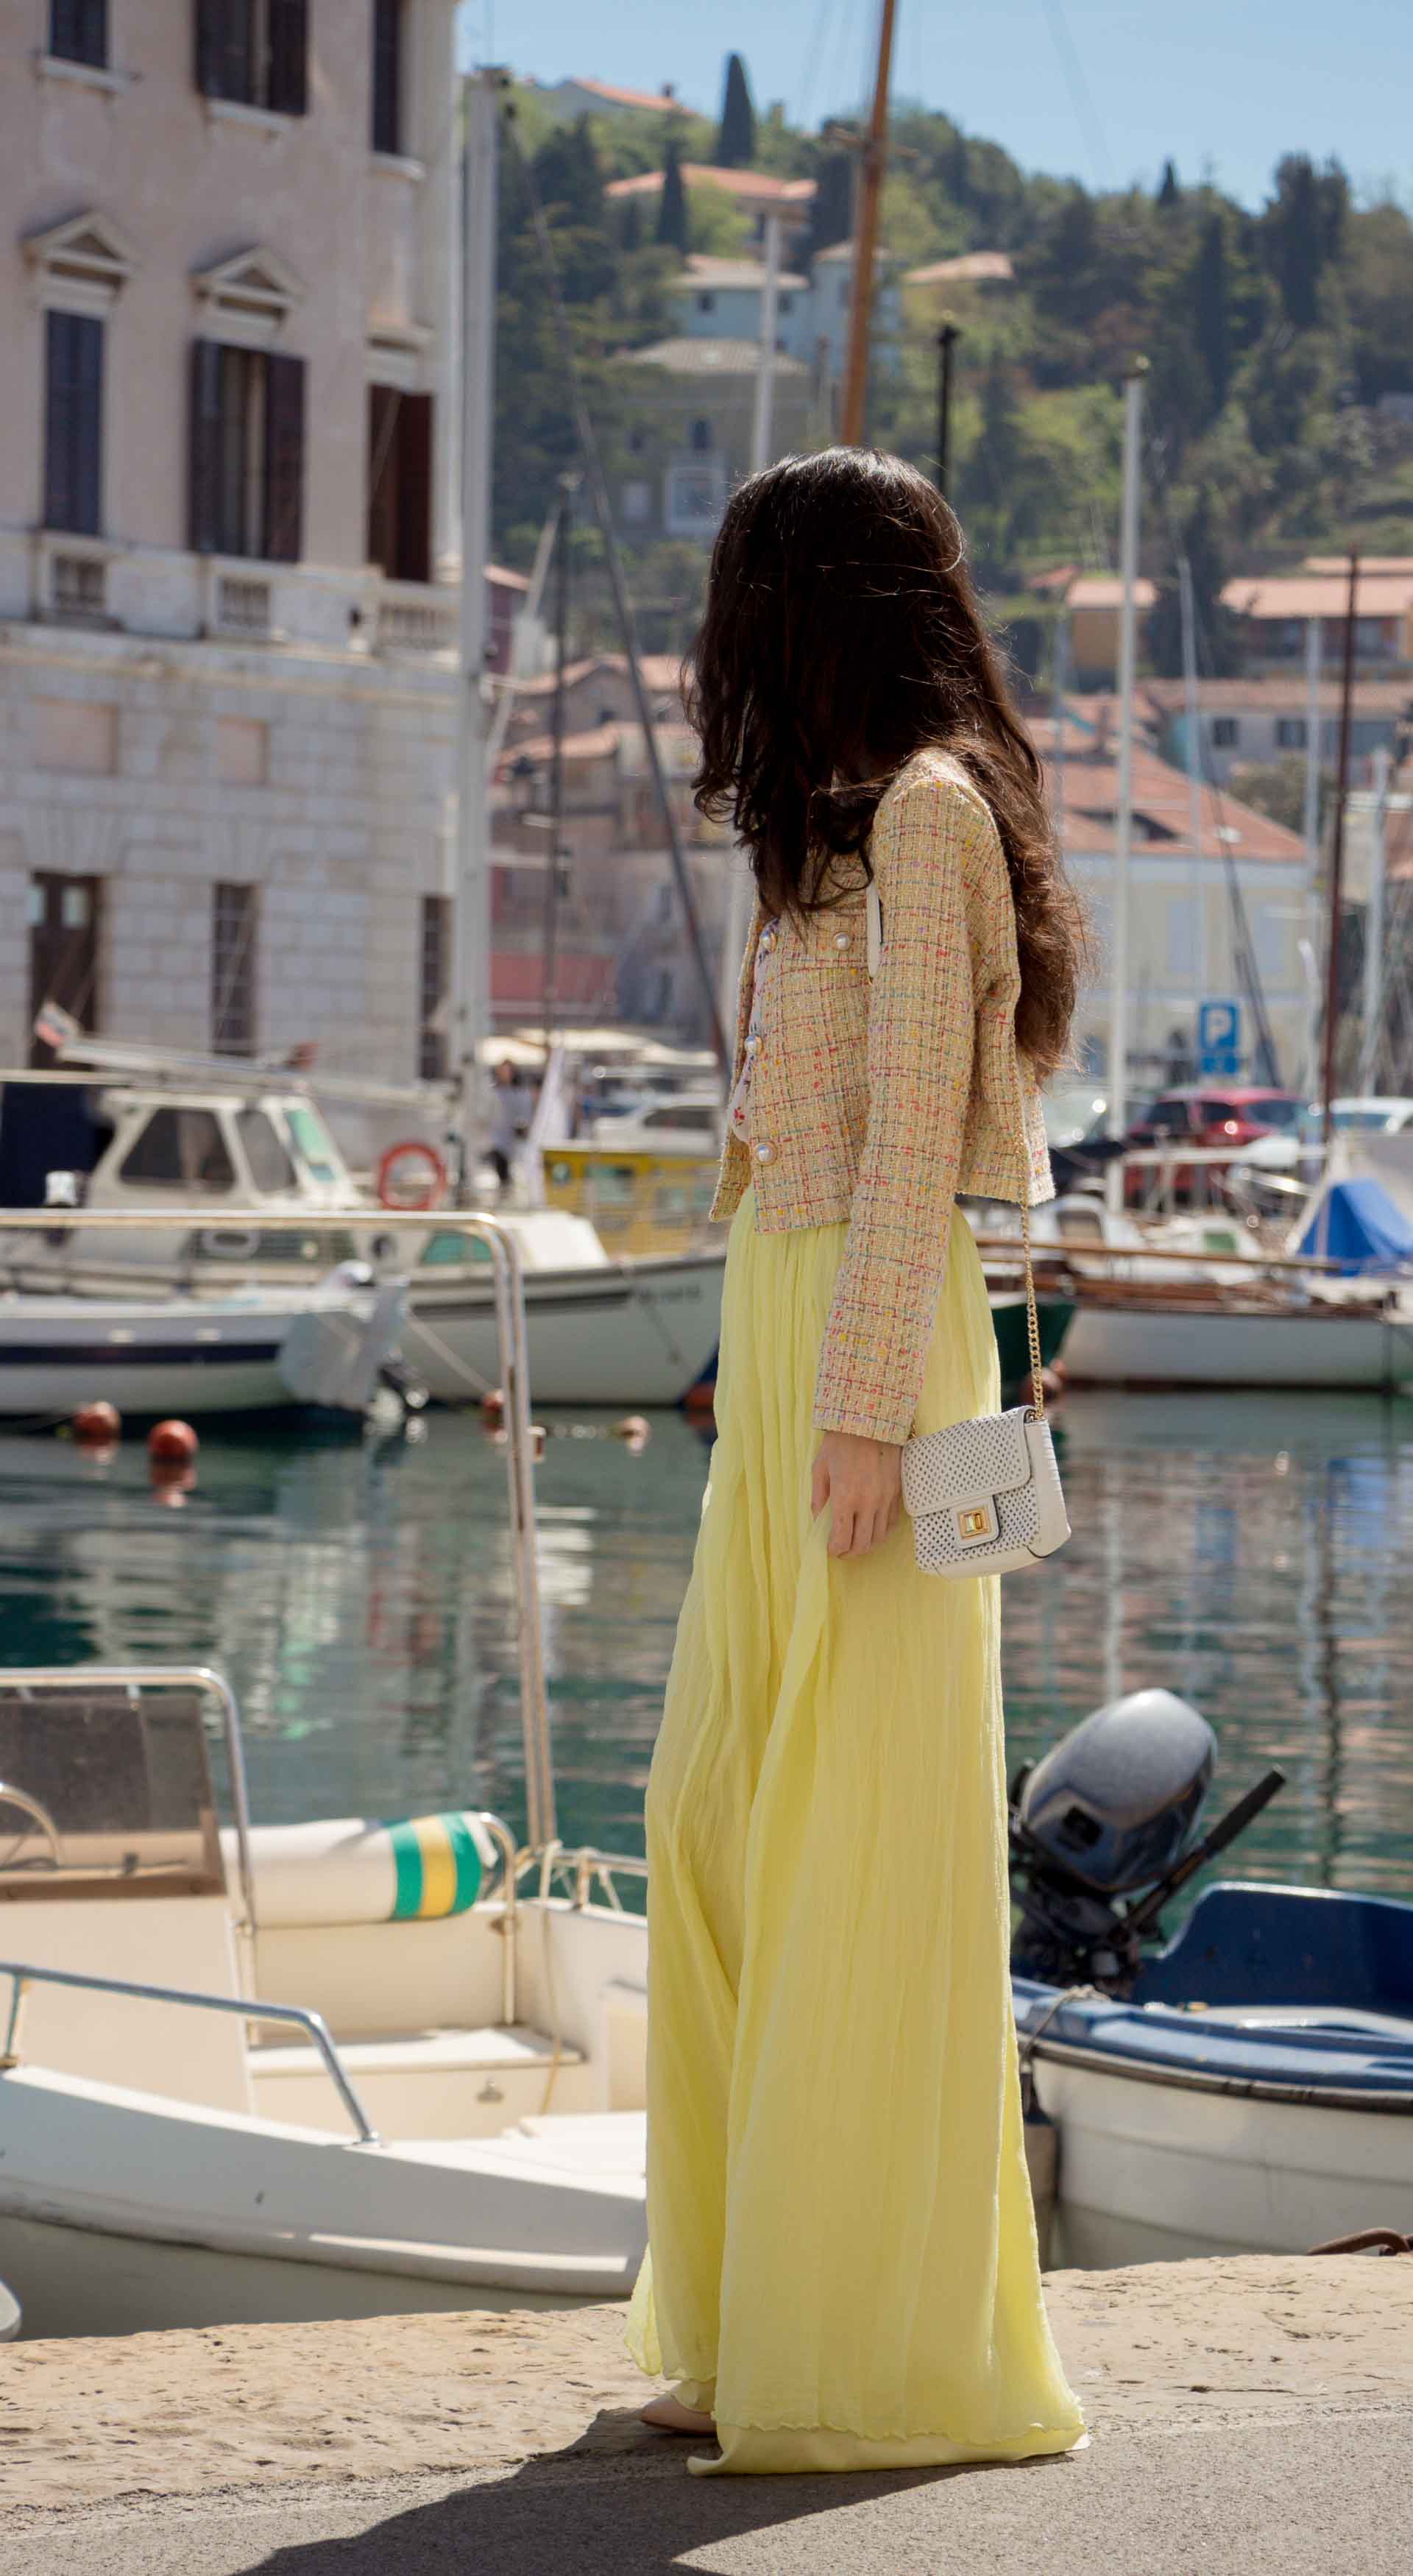 Veronika Lipar Fashion Blogger of Brunette from Wall Street wearing long yellow tulle skirt from Needle & Thread, short yellow tweed jacket from Storets, floral sik top, blush Gianvito Rossi plexi pumps, white shoulder bag, Lespecs white cat eye sunglasses walking at the port in Venice